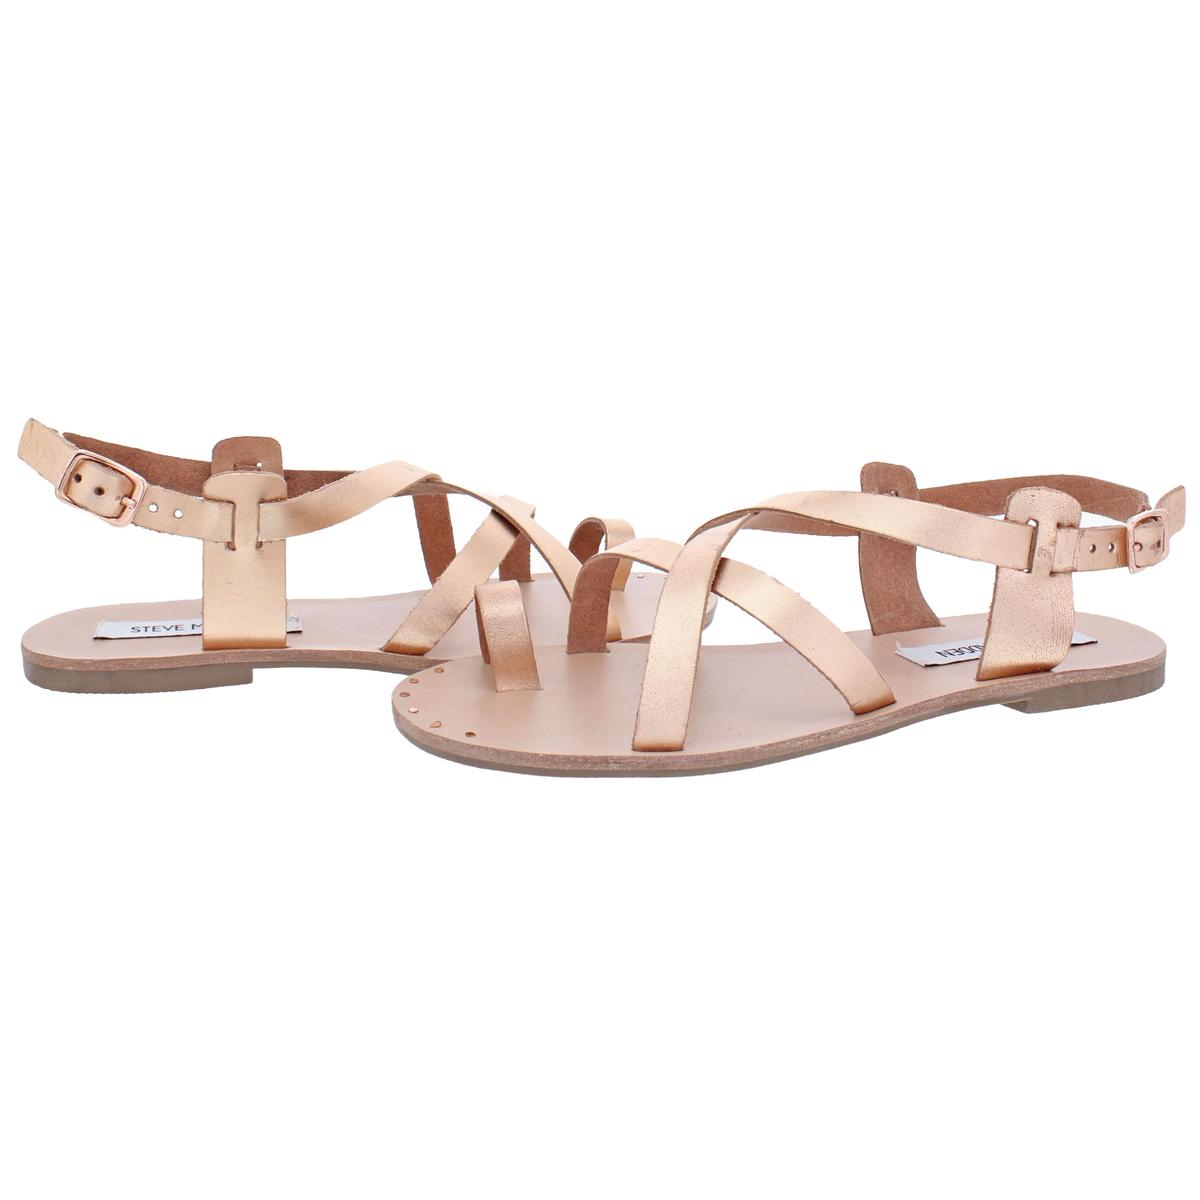 Steve-Madden-Women-039-s-Aatheena-Leather-Strappy-Slingback-Flat-Sandals-Shoes thumbnail 6